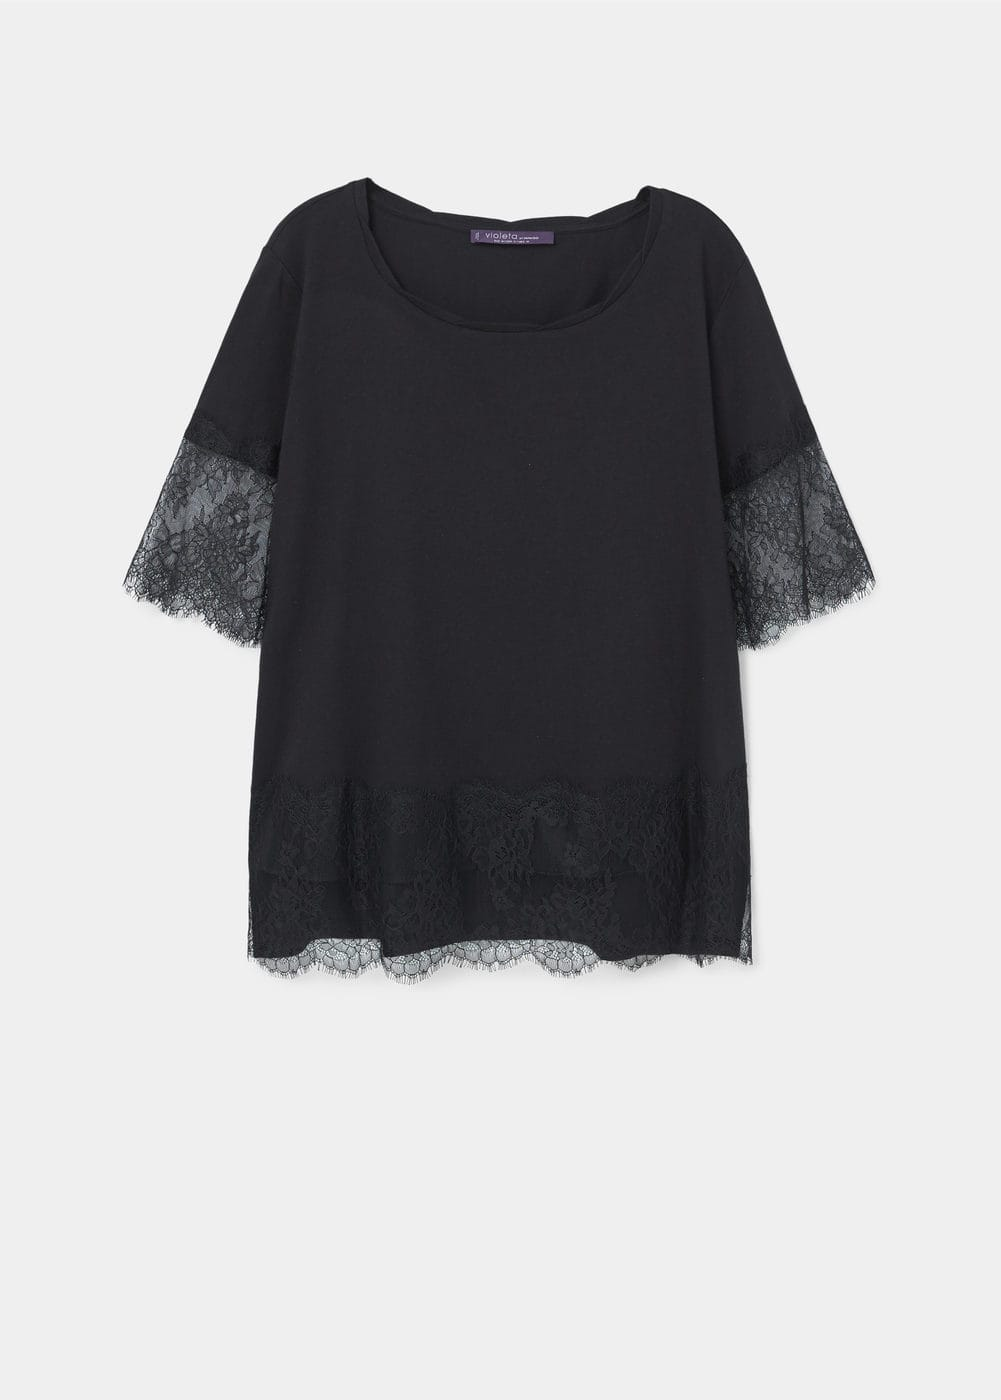 Shirt mit spitzenapplikationen | VIOLETA BY MANGO